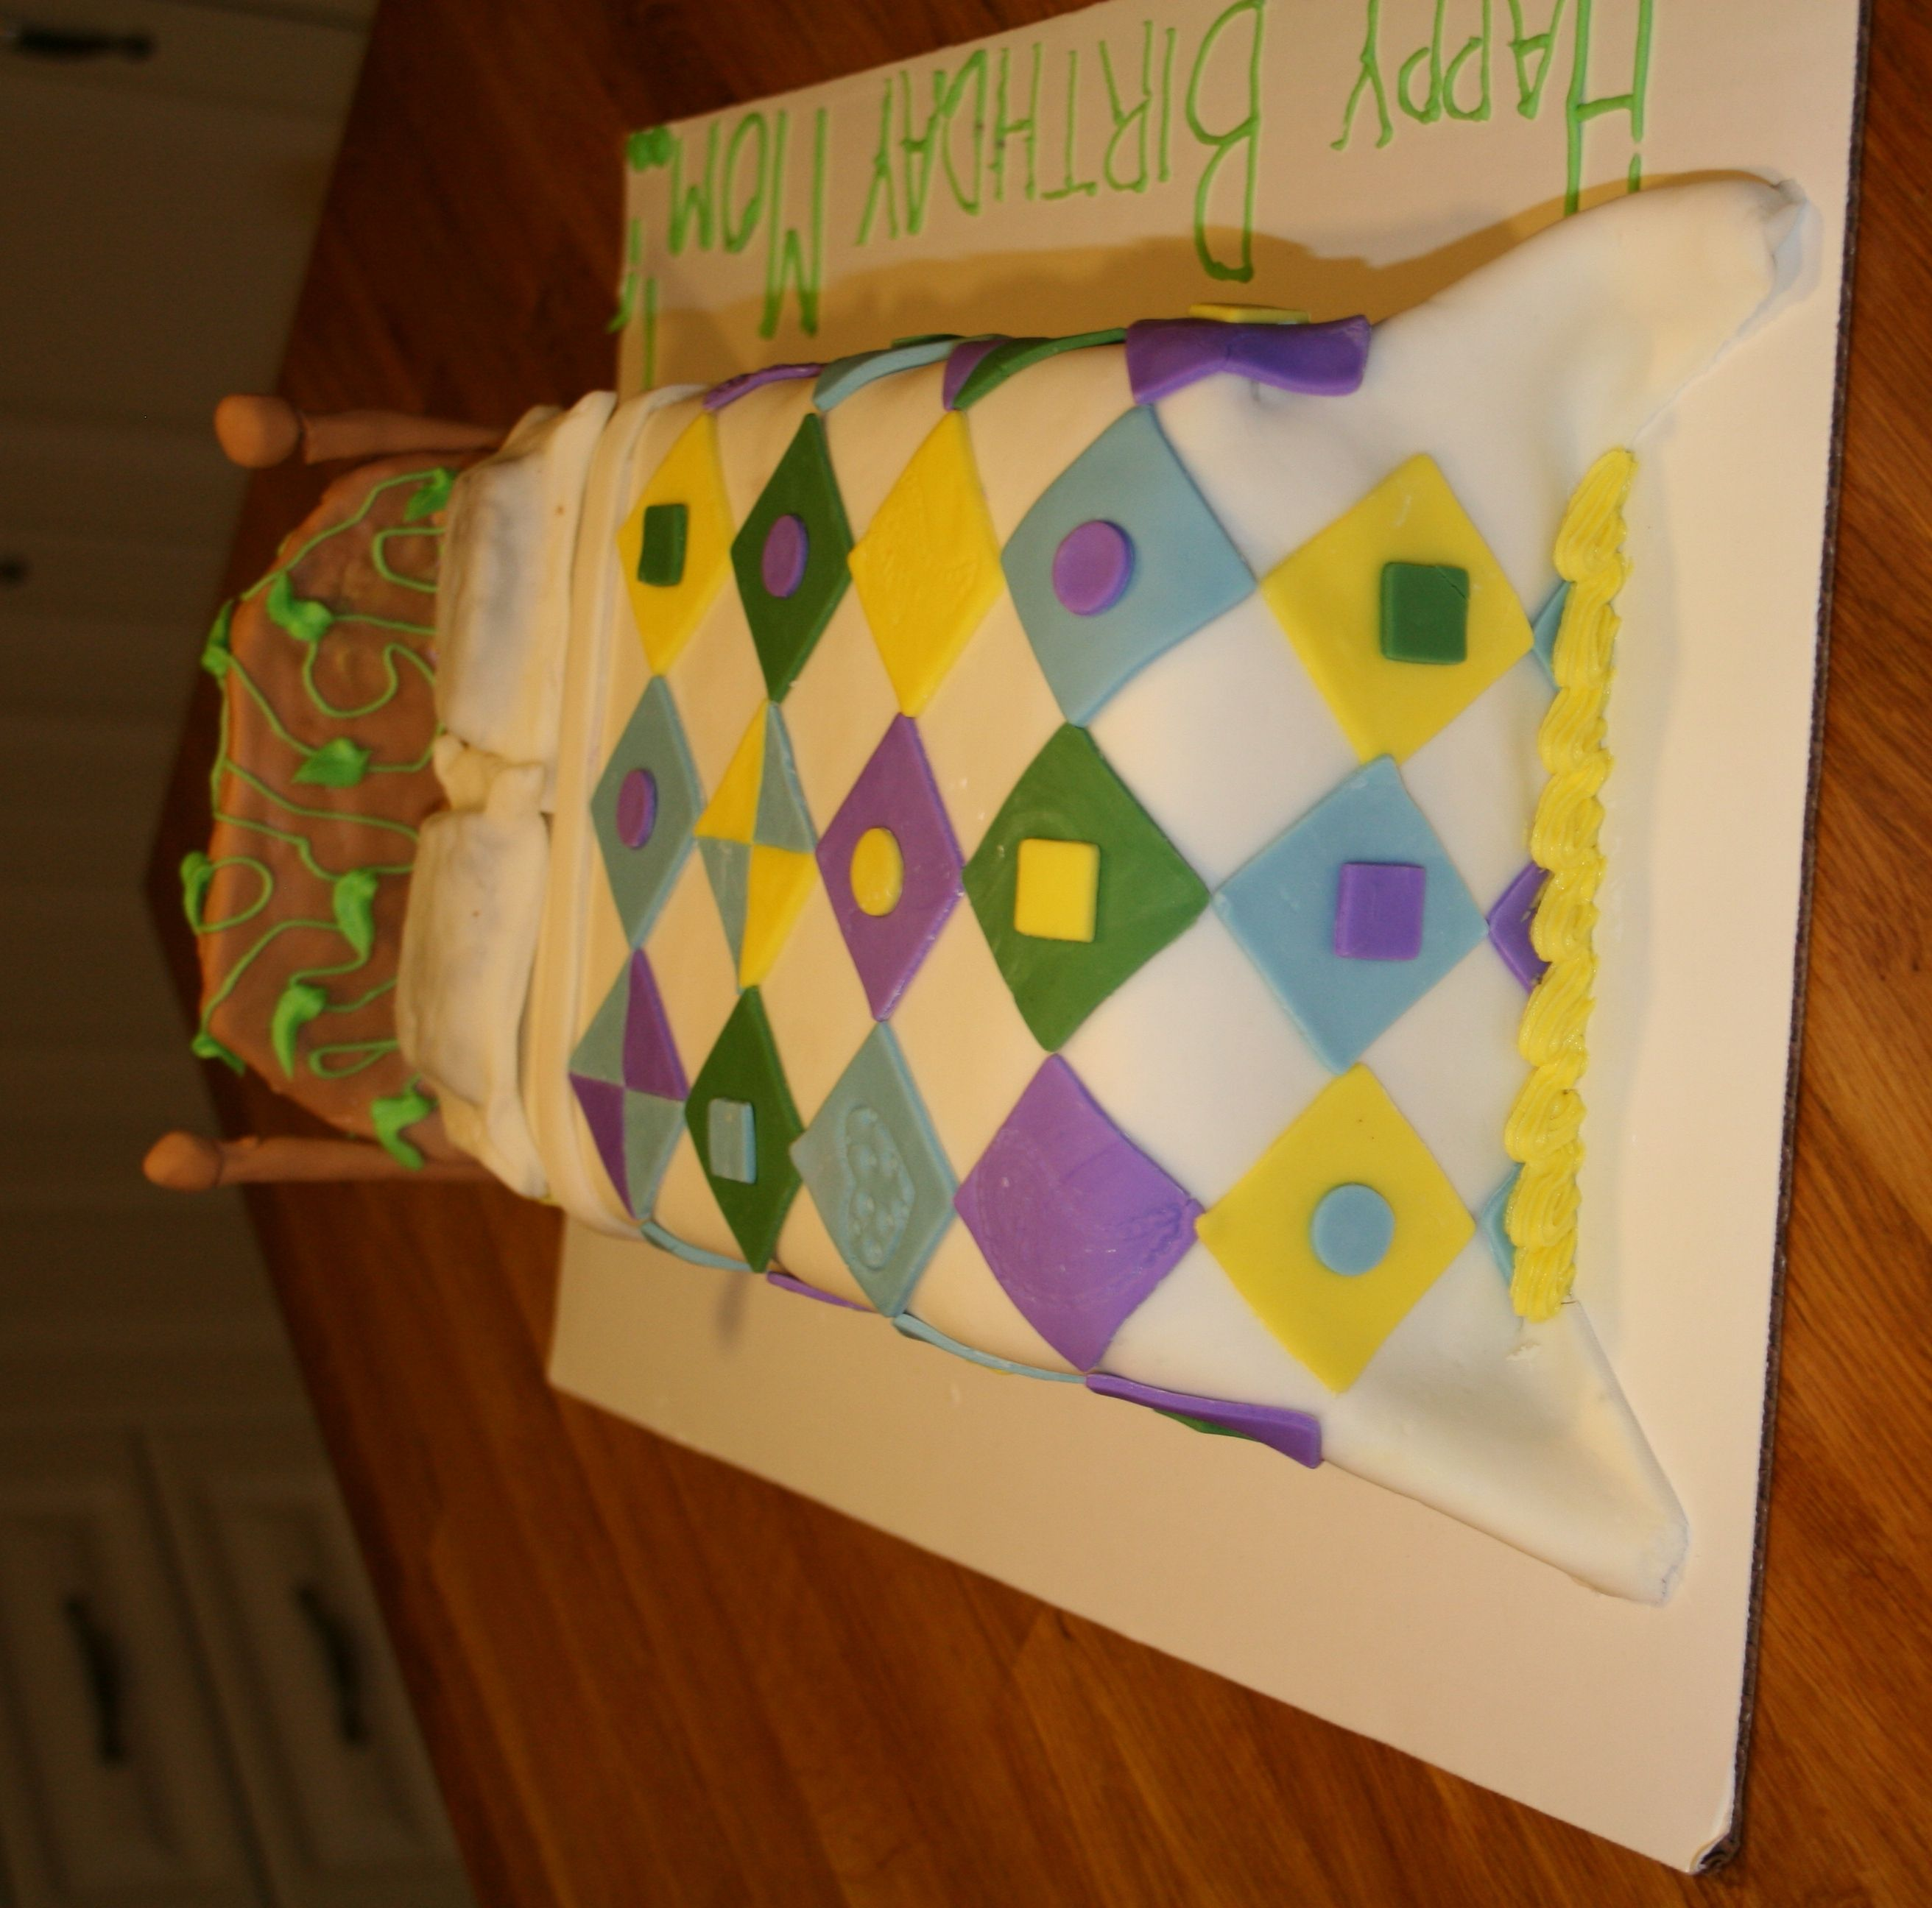 A great birthday cake for the quilter in your life!